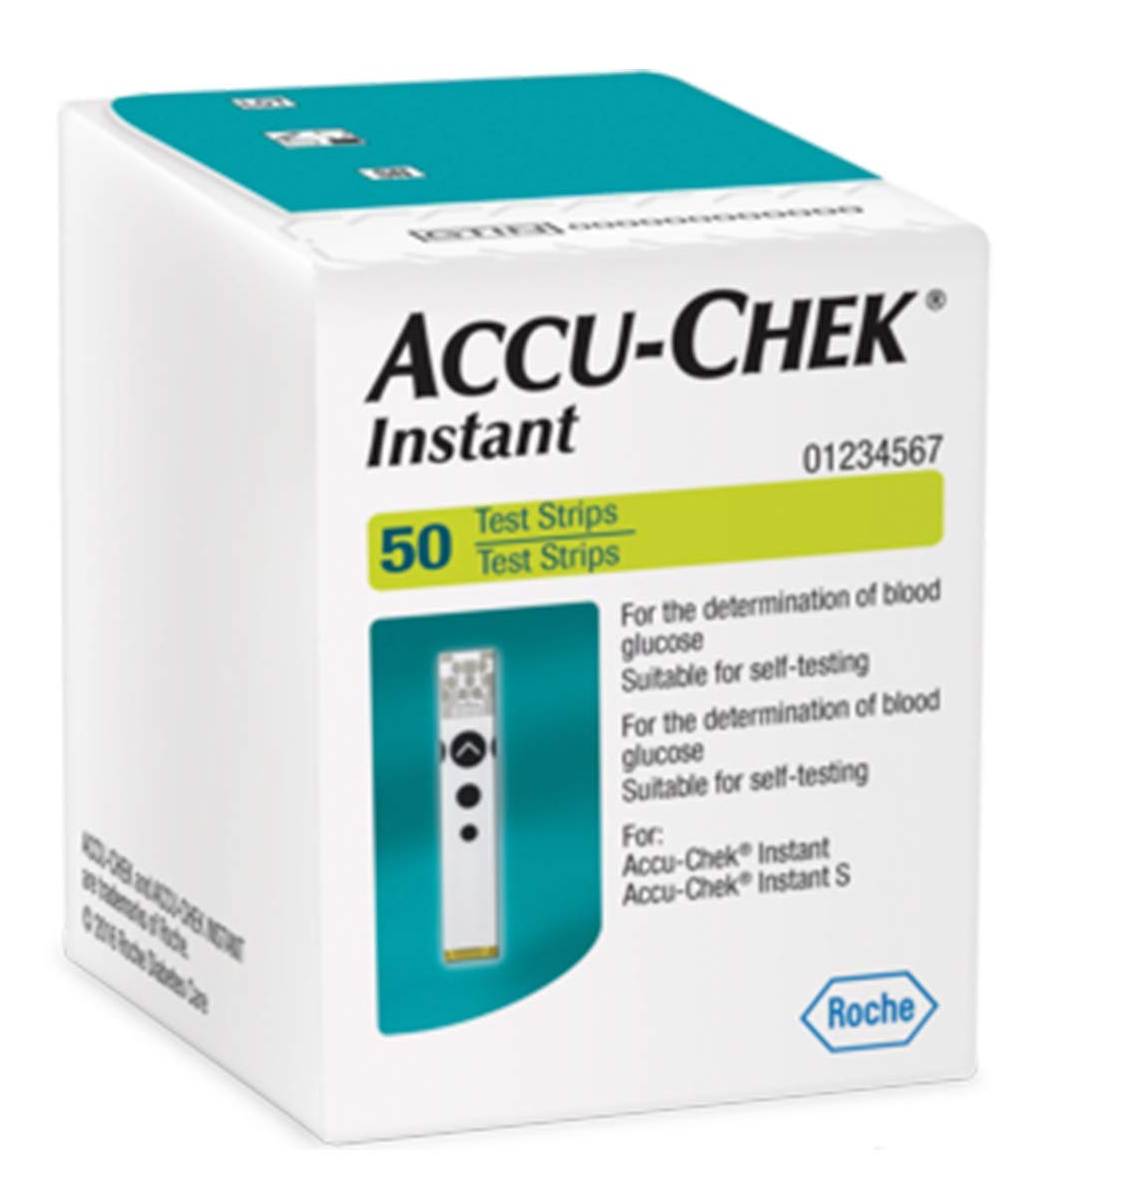 Accu-Chek Instant Test Strip